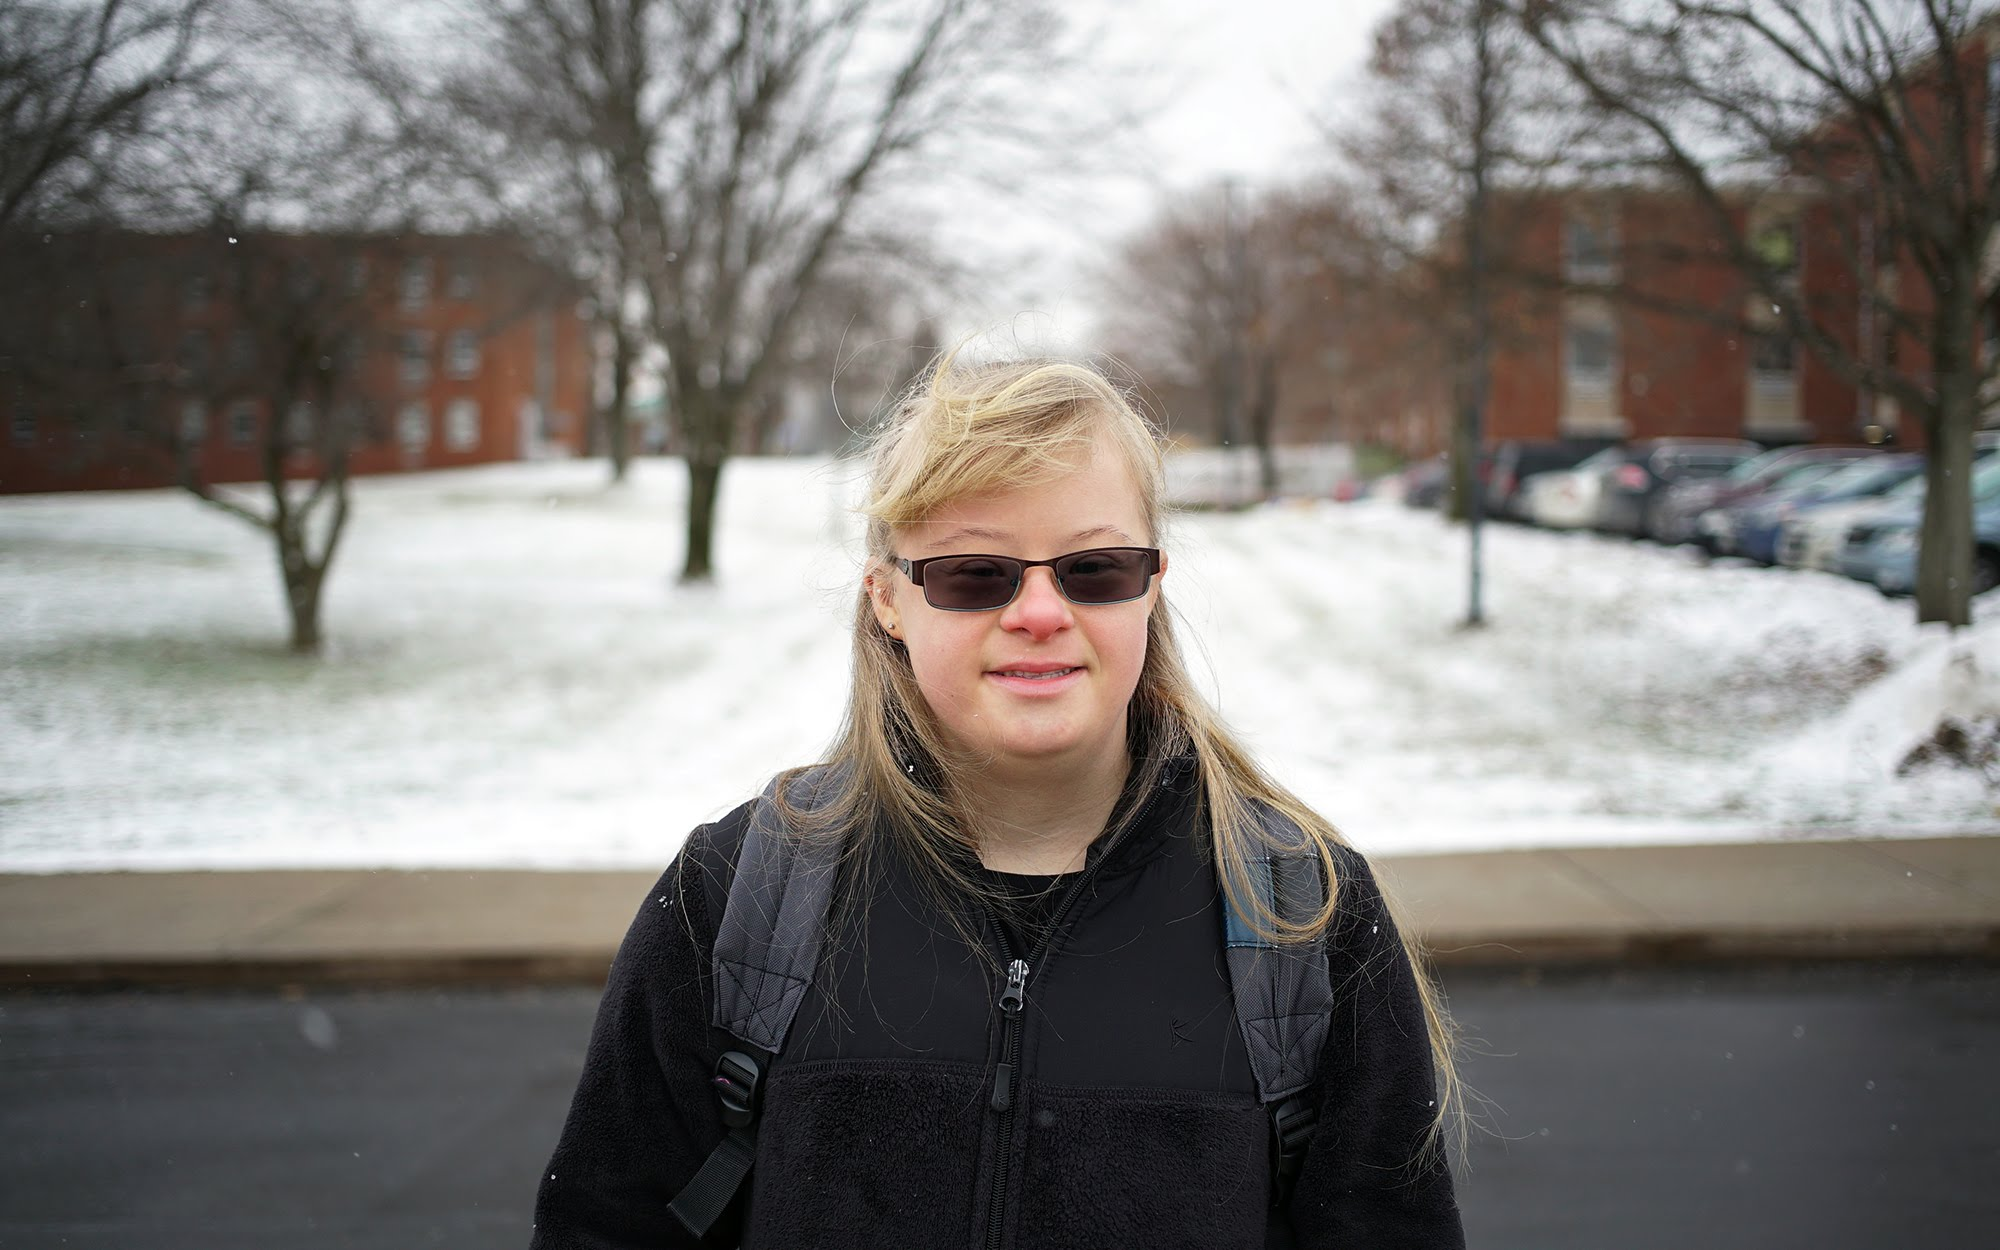 Nicolette Fenello, 21, is a second-year student at Slippery Rock University. (Photo by Ryan Loew/PublicSource)